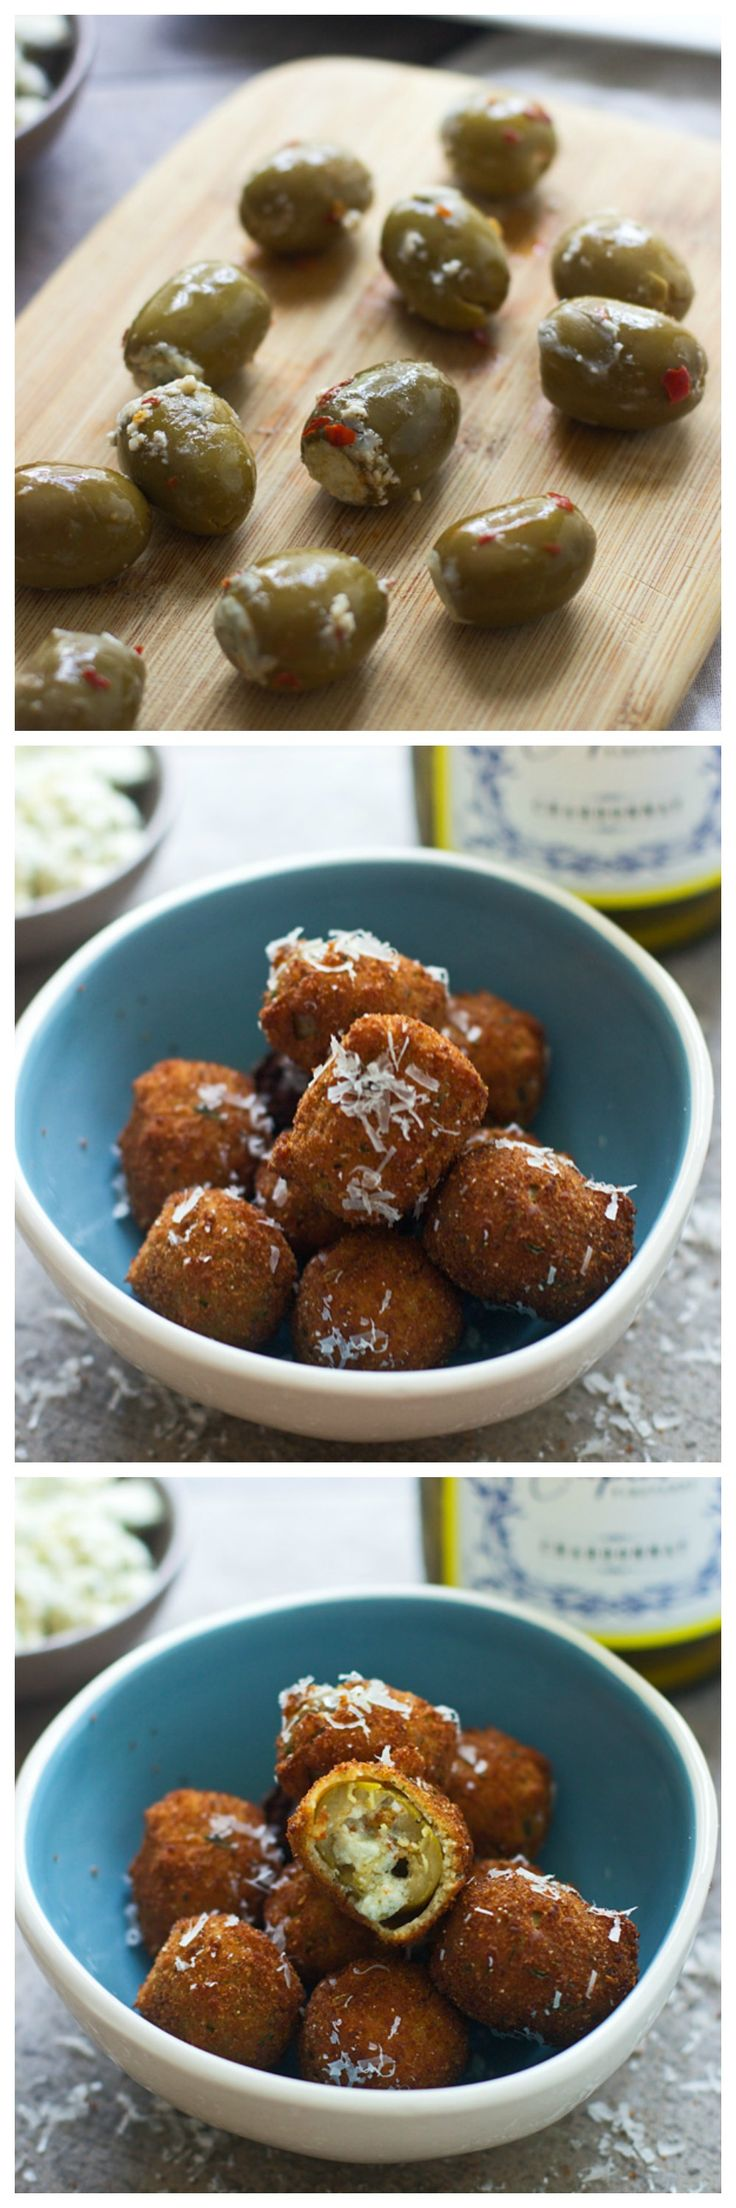 Fried Blue Cheese Stuffed Olives (Super easy!)